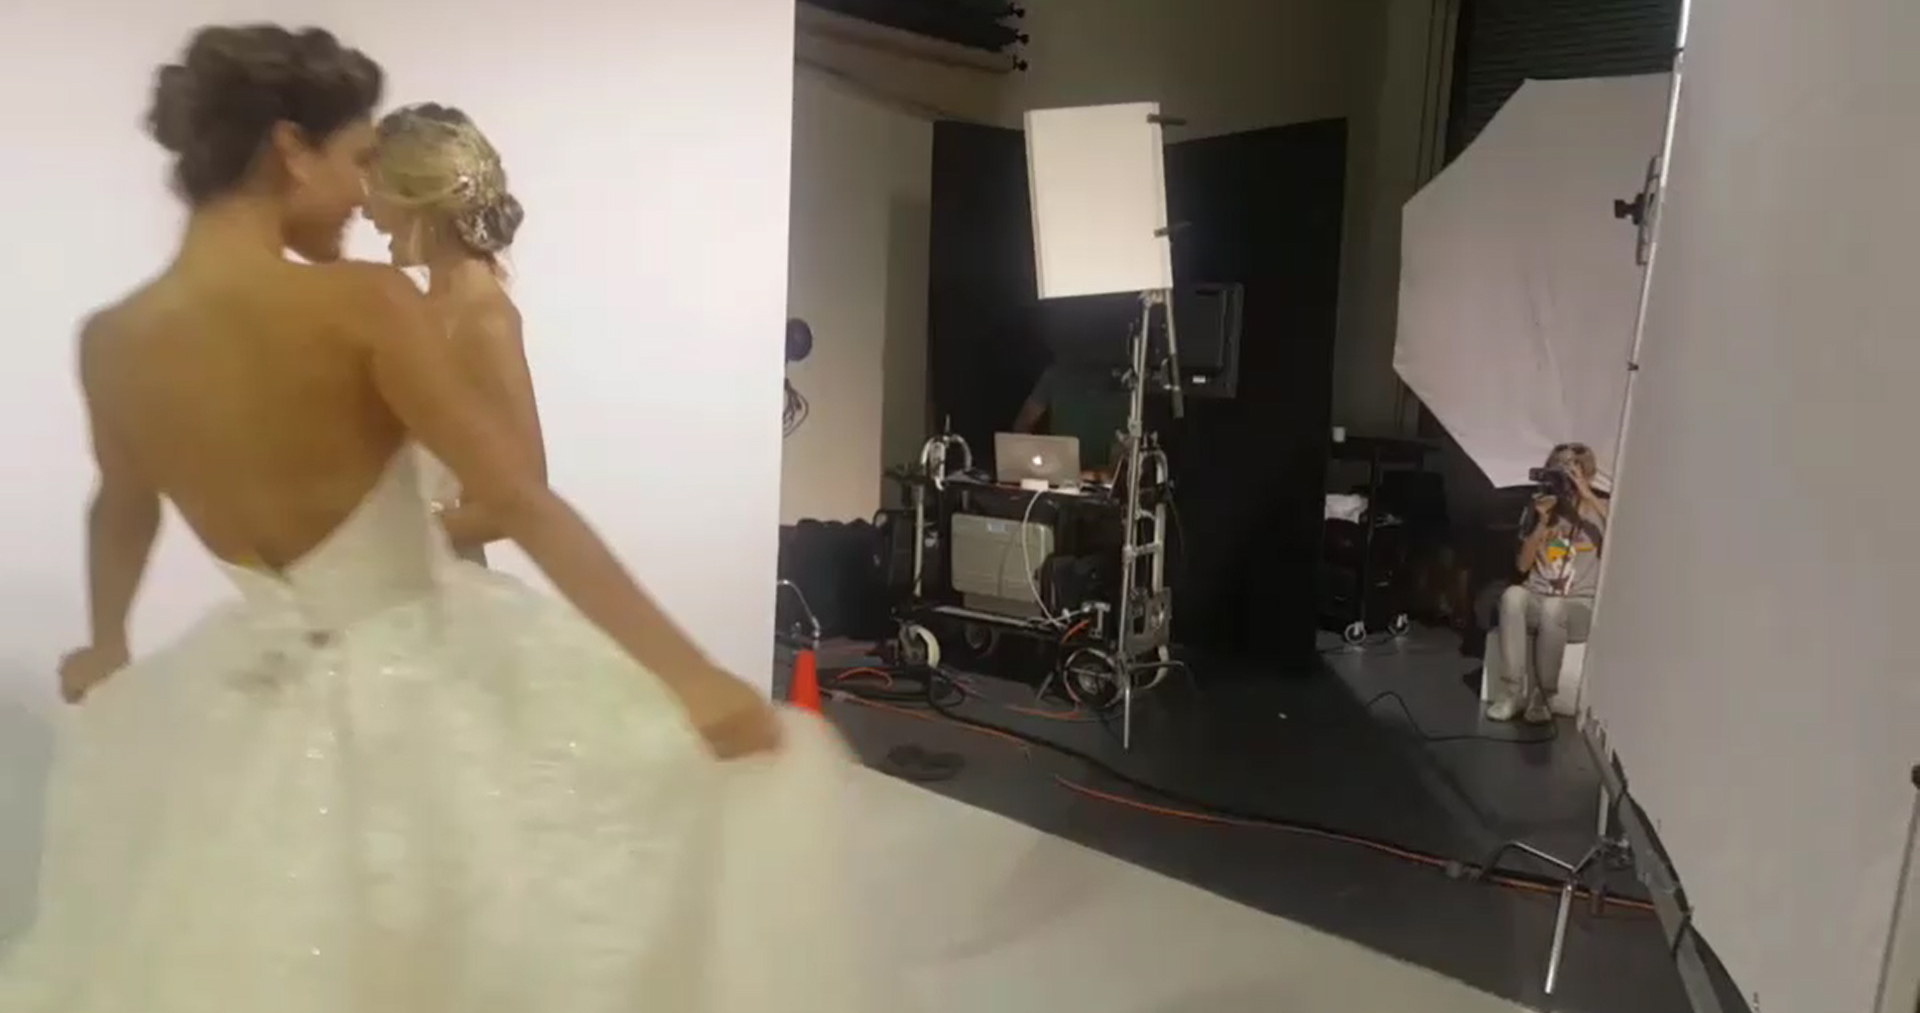 behind the scene photoshoot